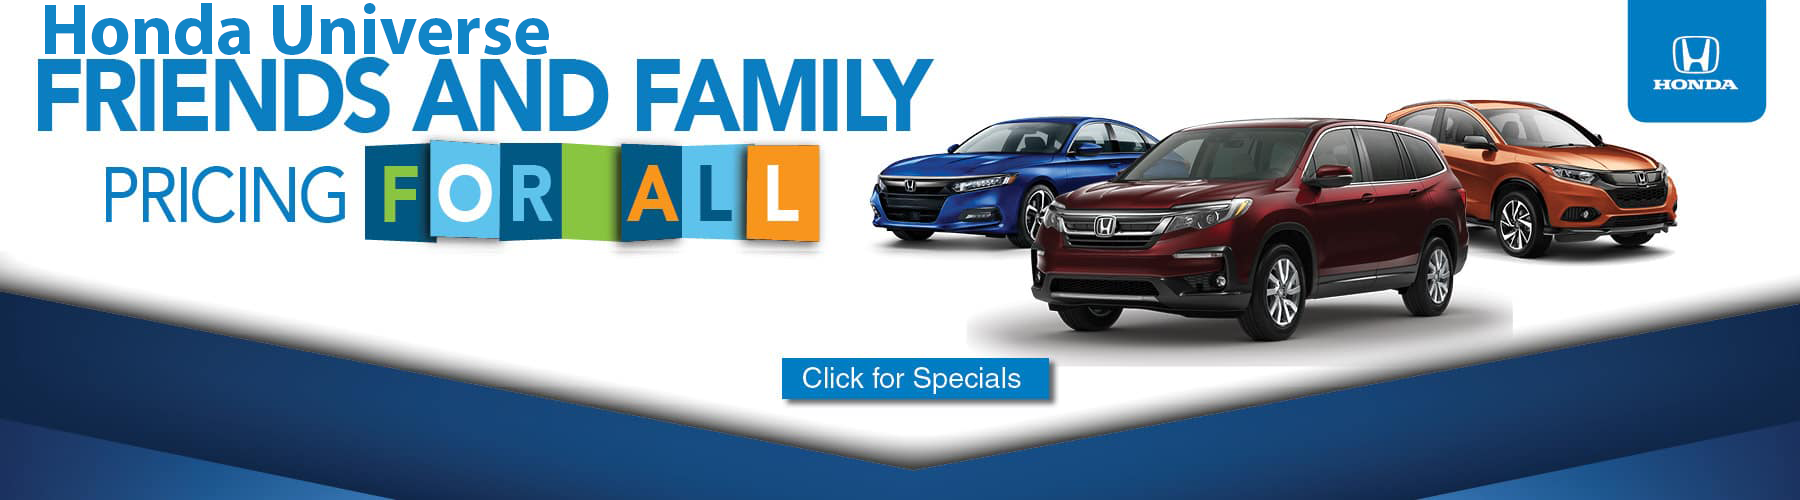 Honda Universe Friends and Family discount